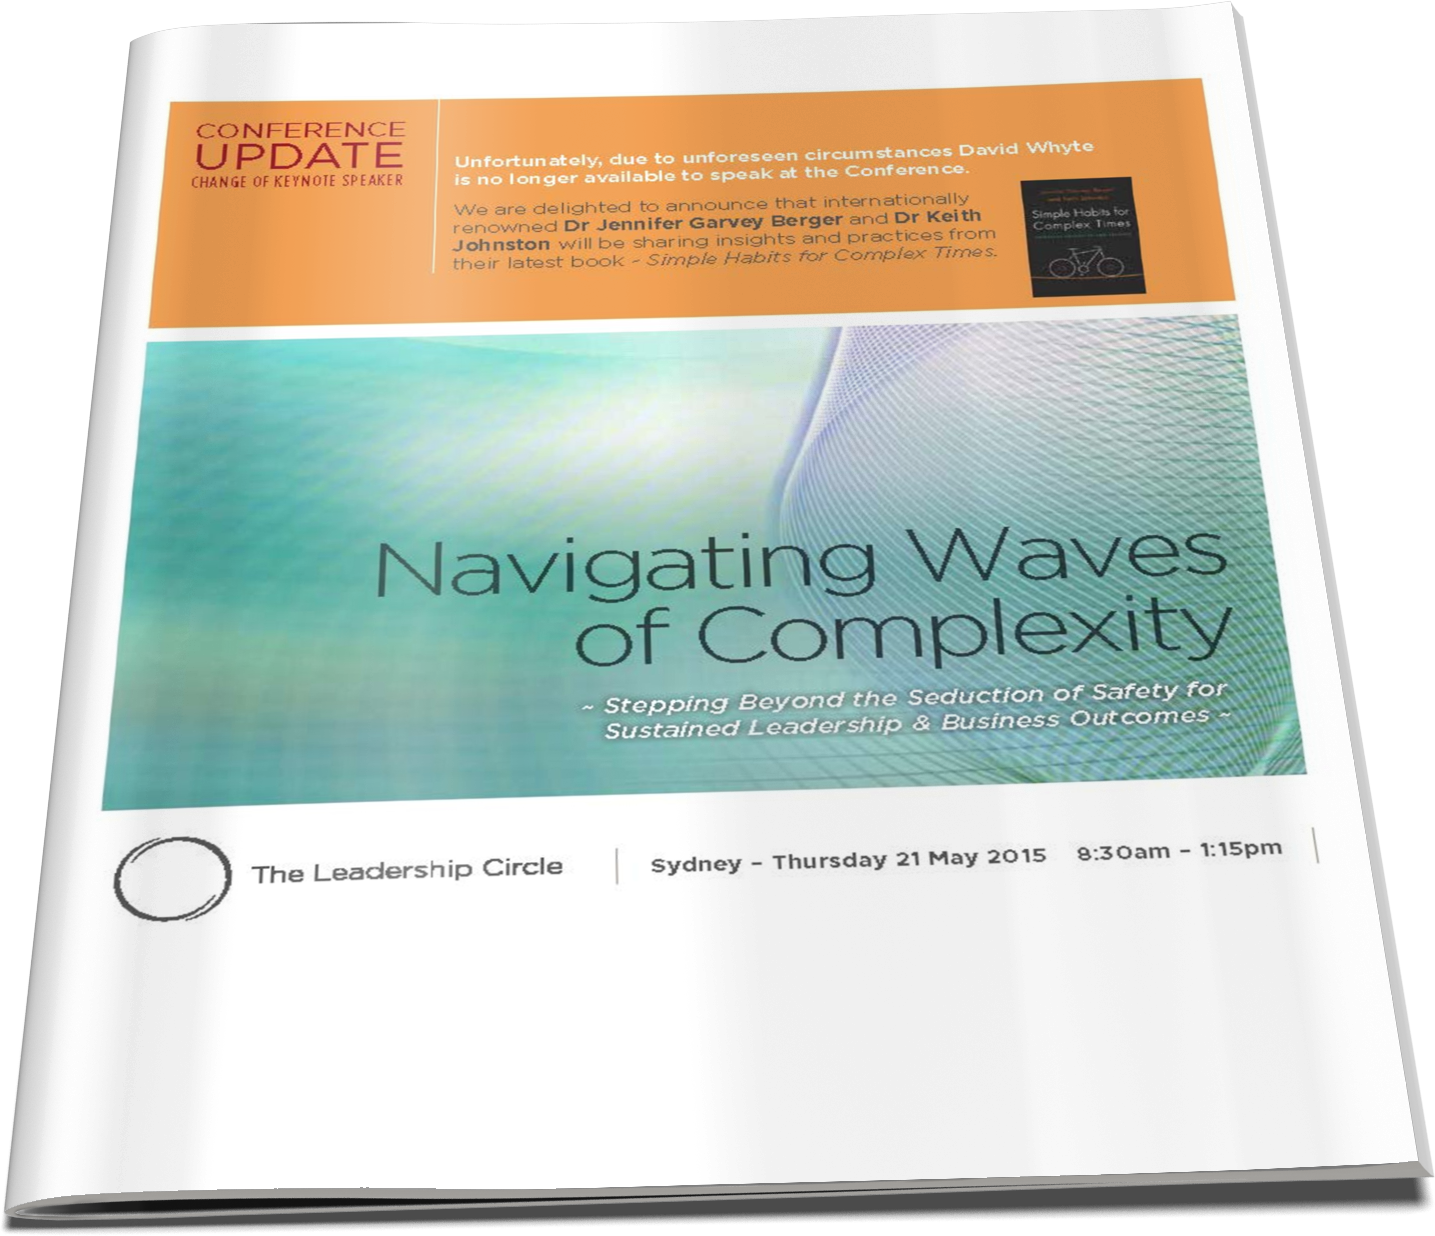 21 May, 2015 - Navigating Waves of Complexity: Accelerating Practical Pathways into Leadership Effectiveness and Organisational Performance